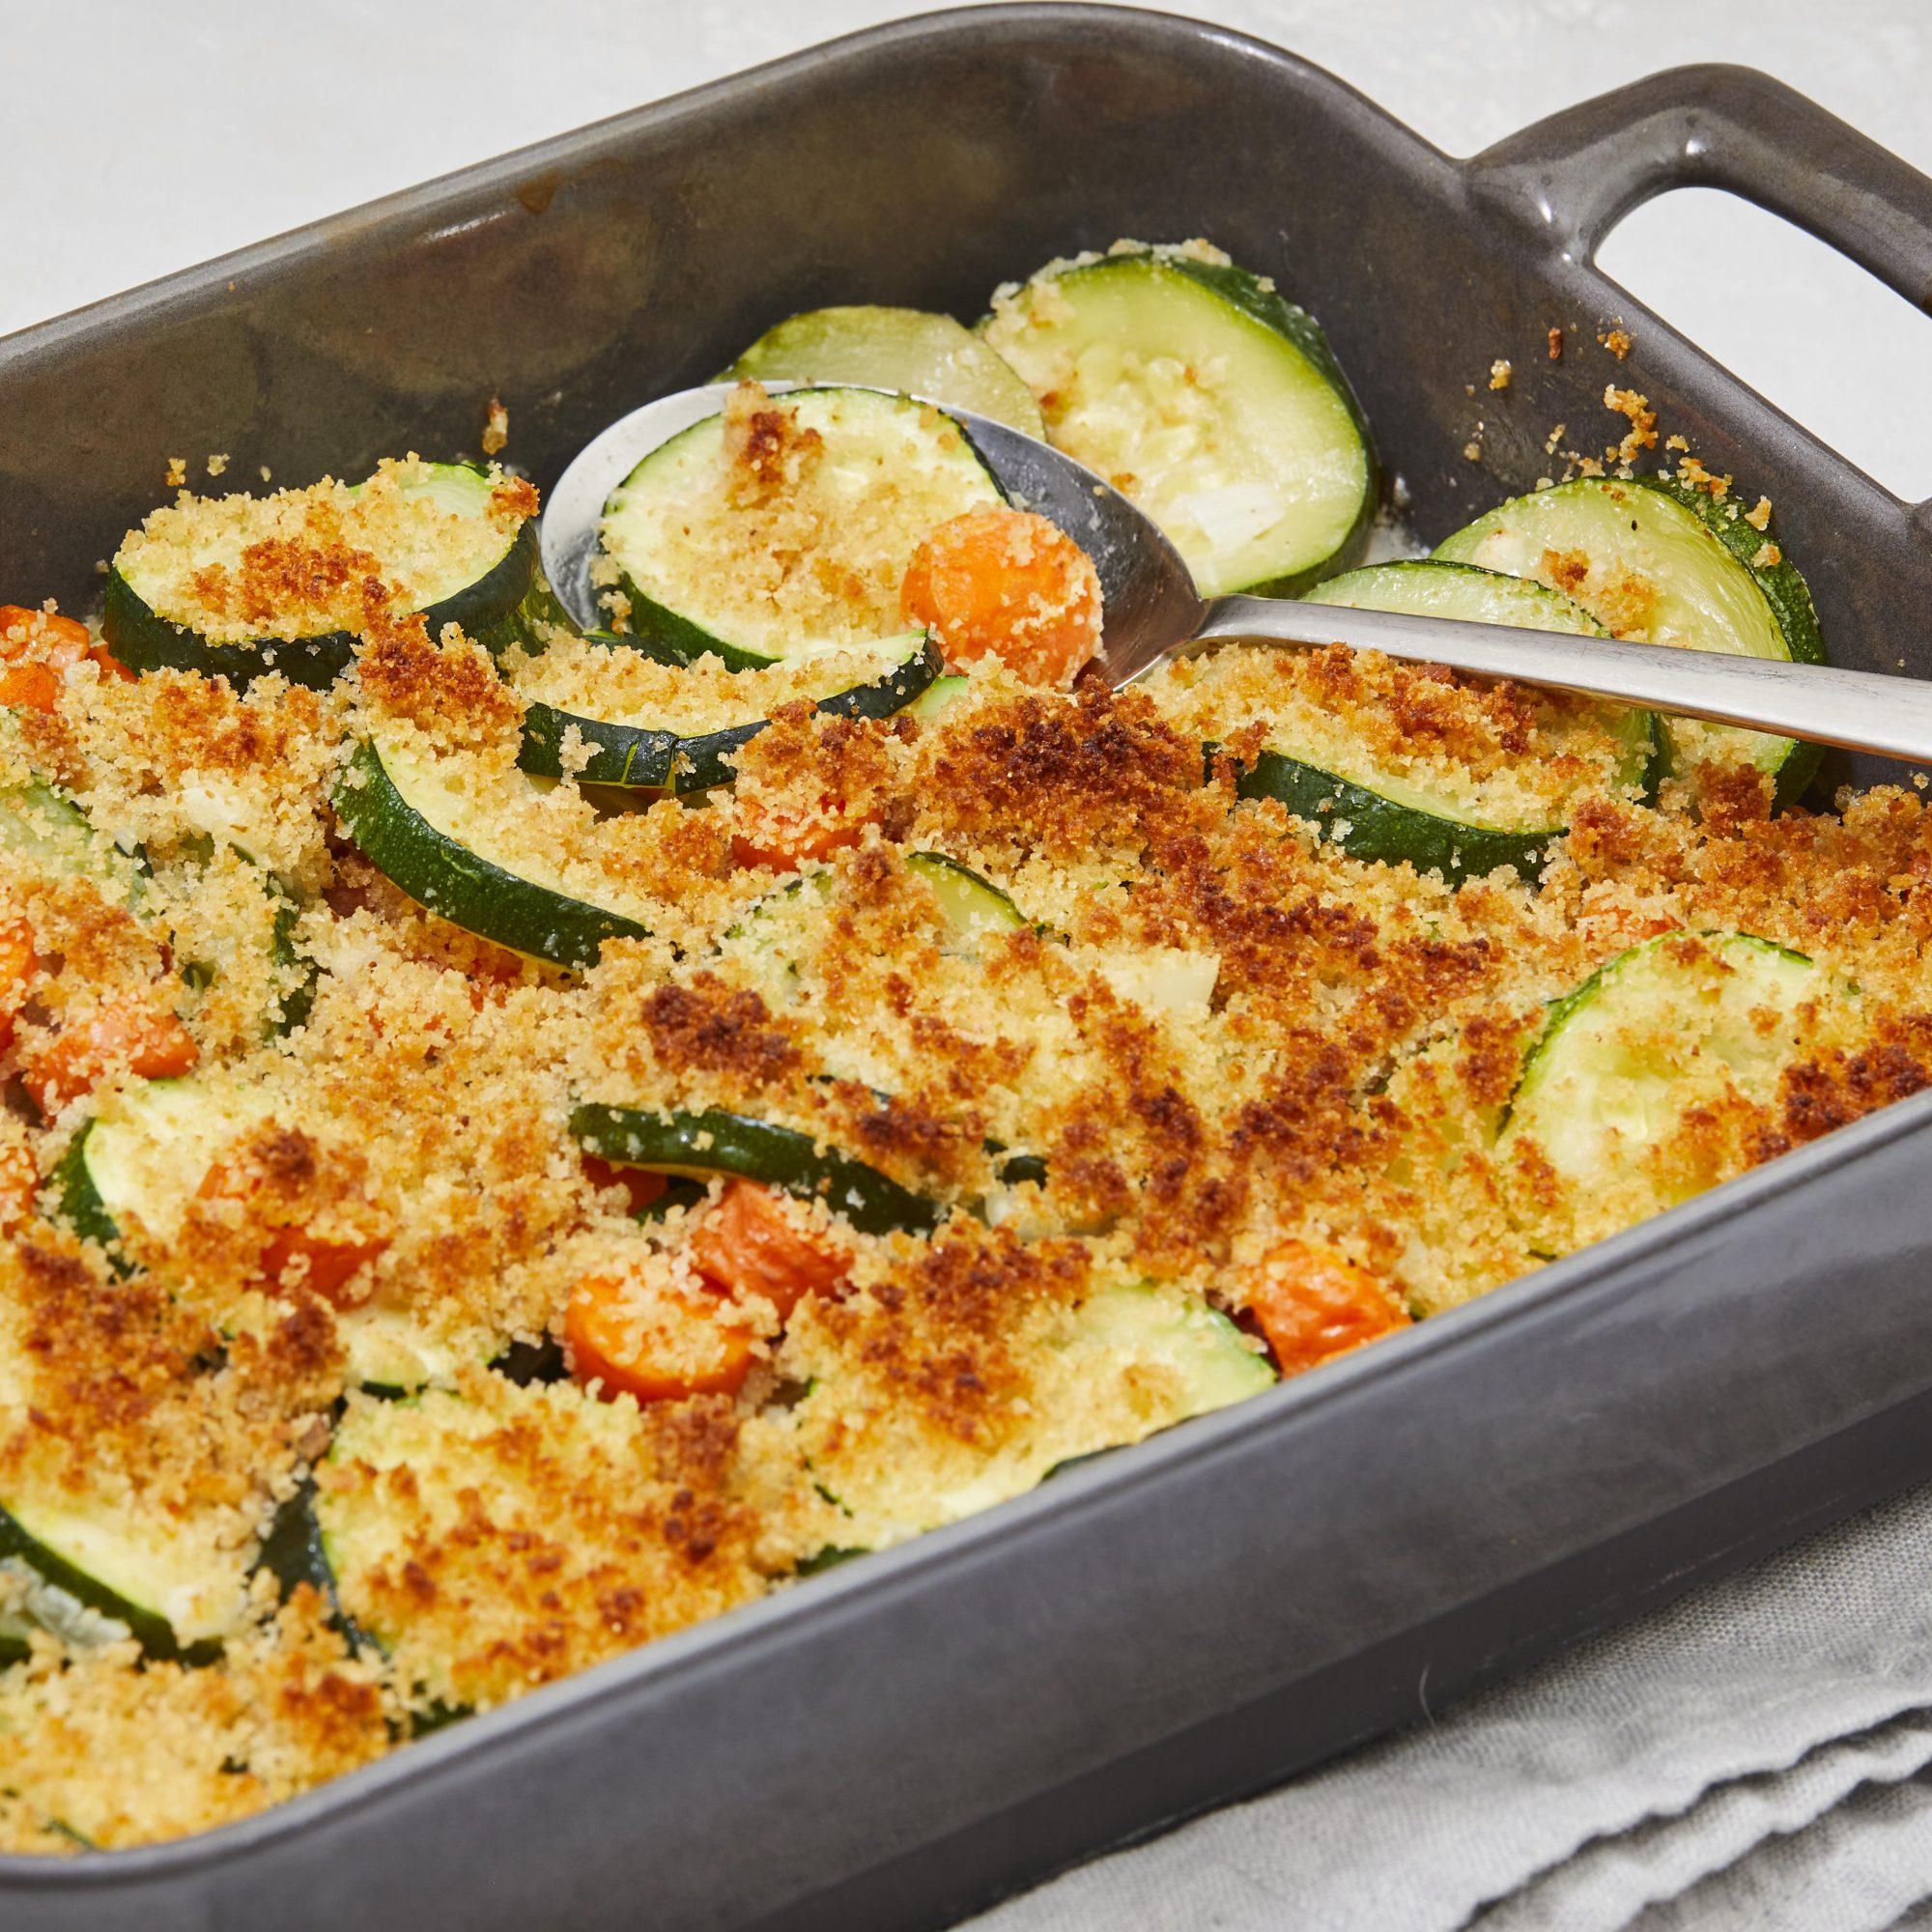 zucchini gratin in casserole dish with serving spoon